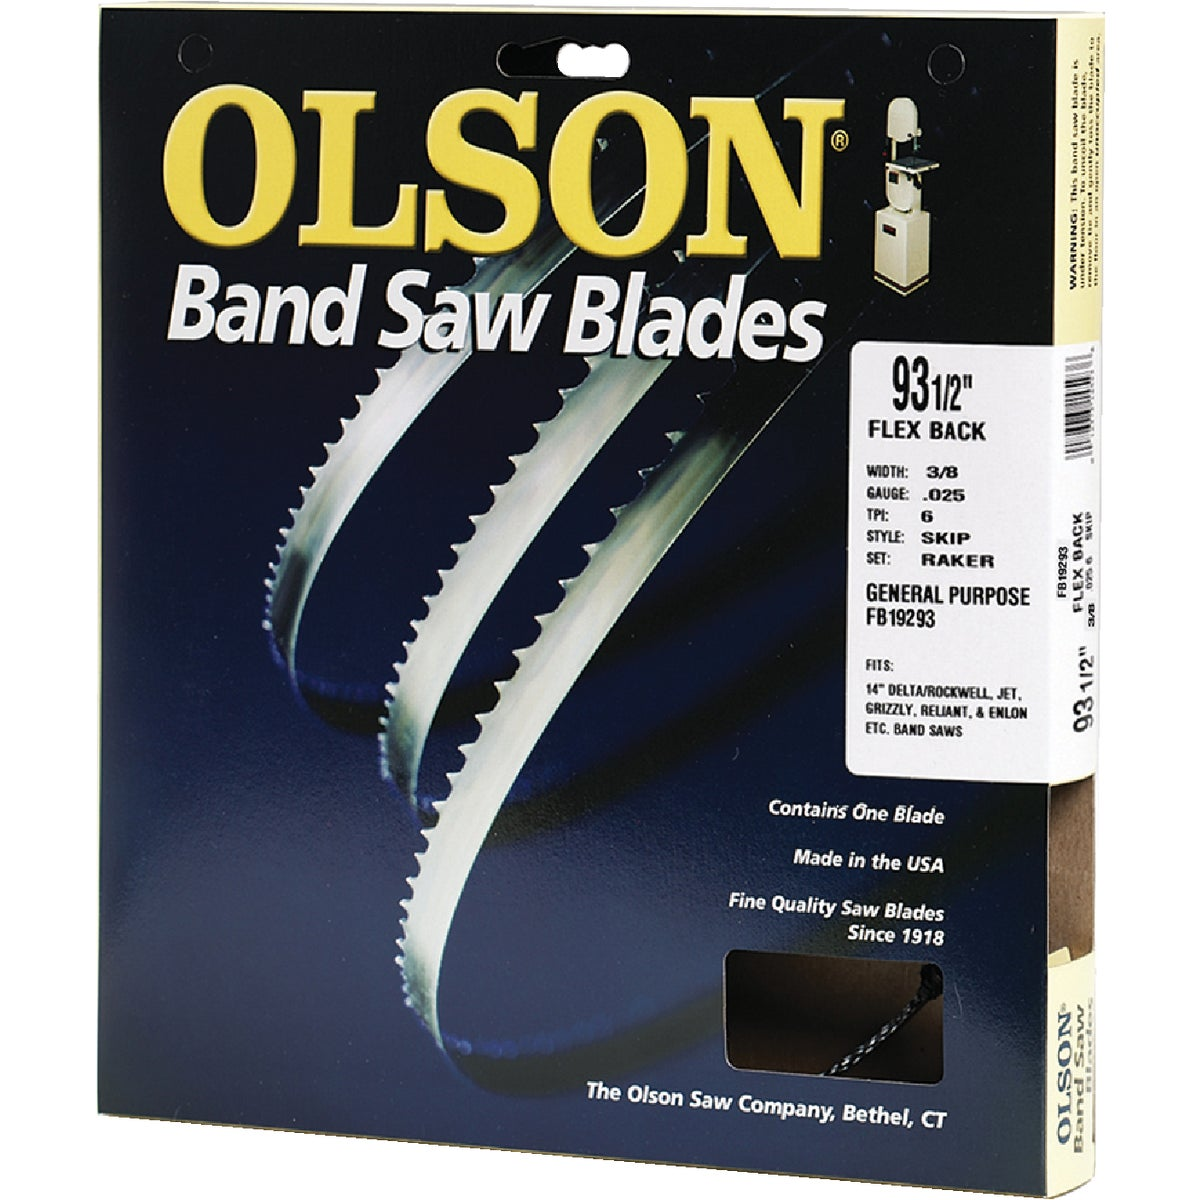 "93-1/2"" BANDSAW BLADE - 19293 by Olson Saw Co"